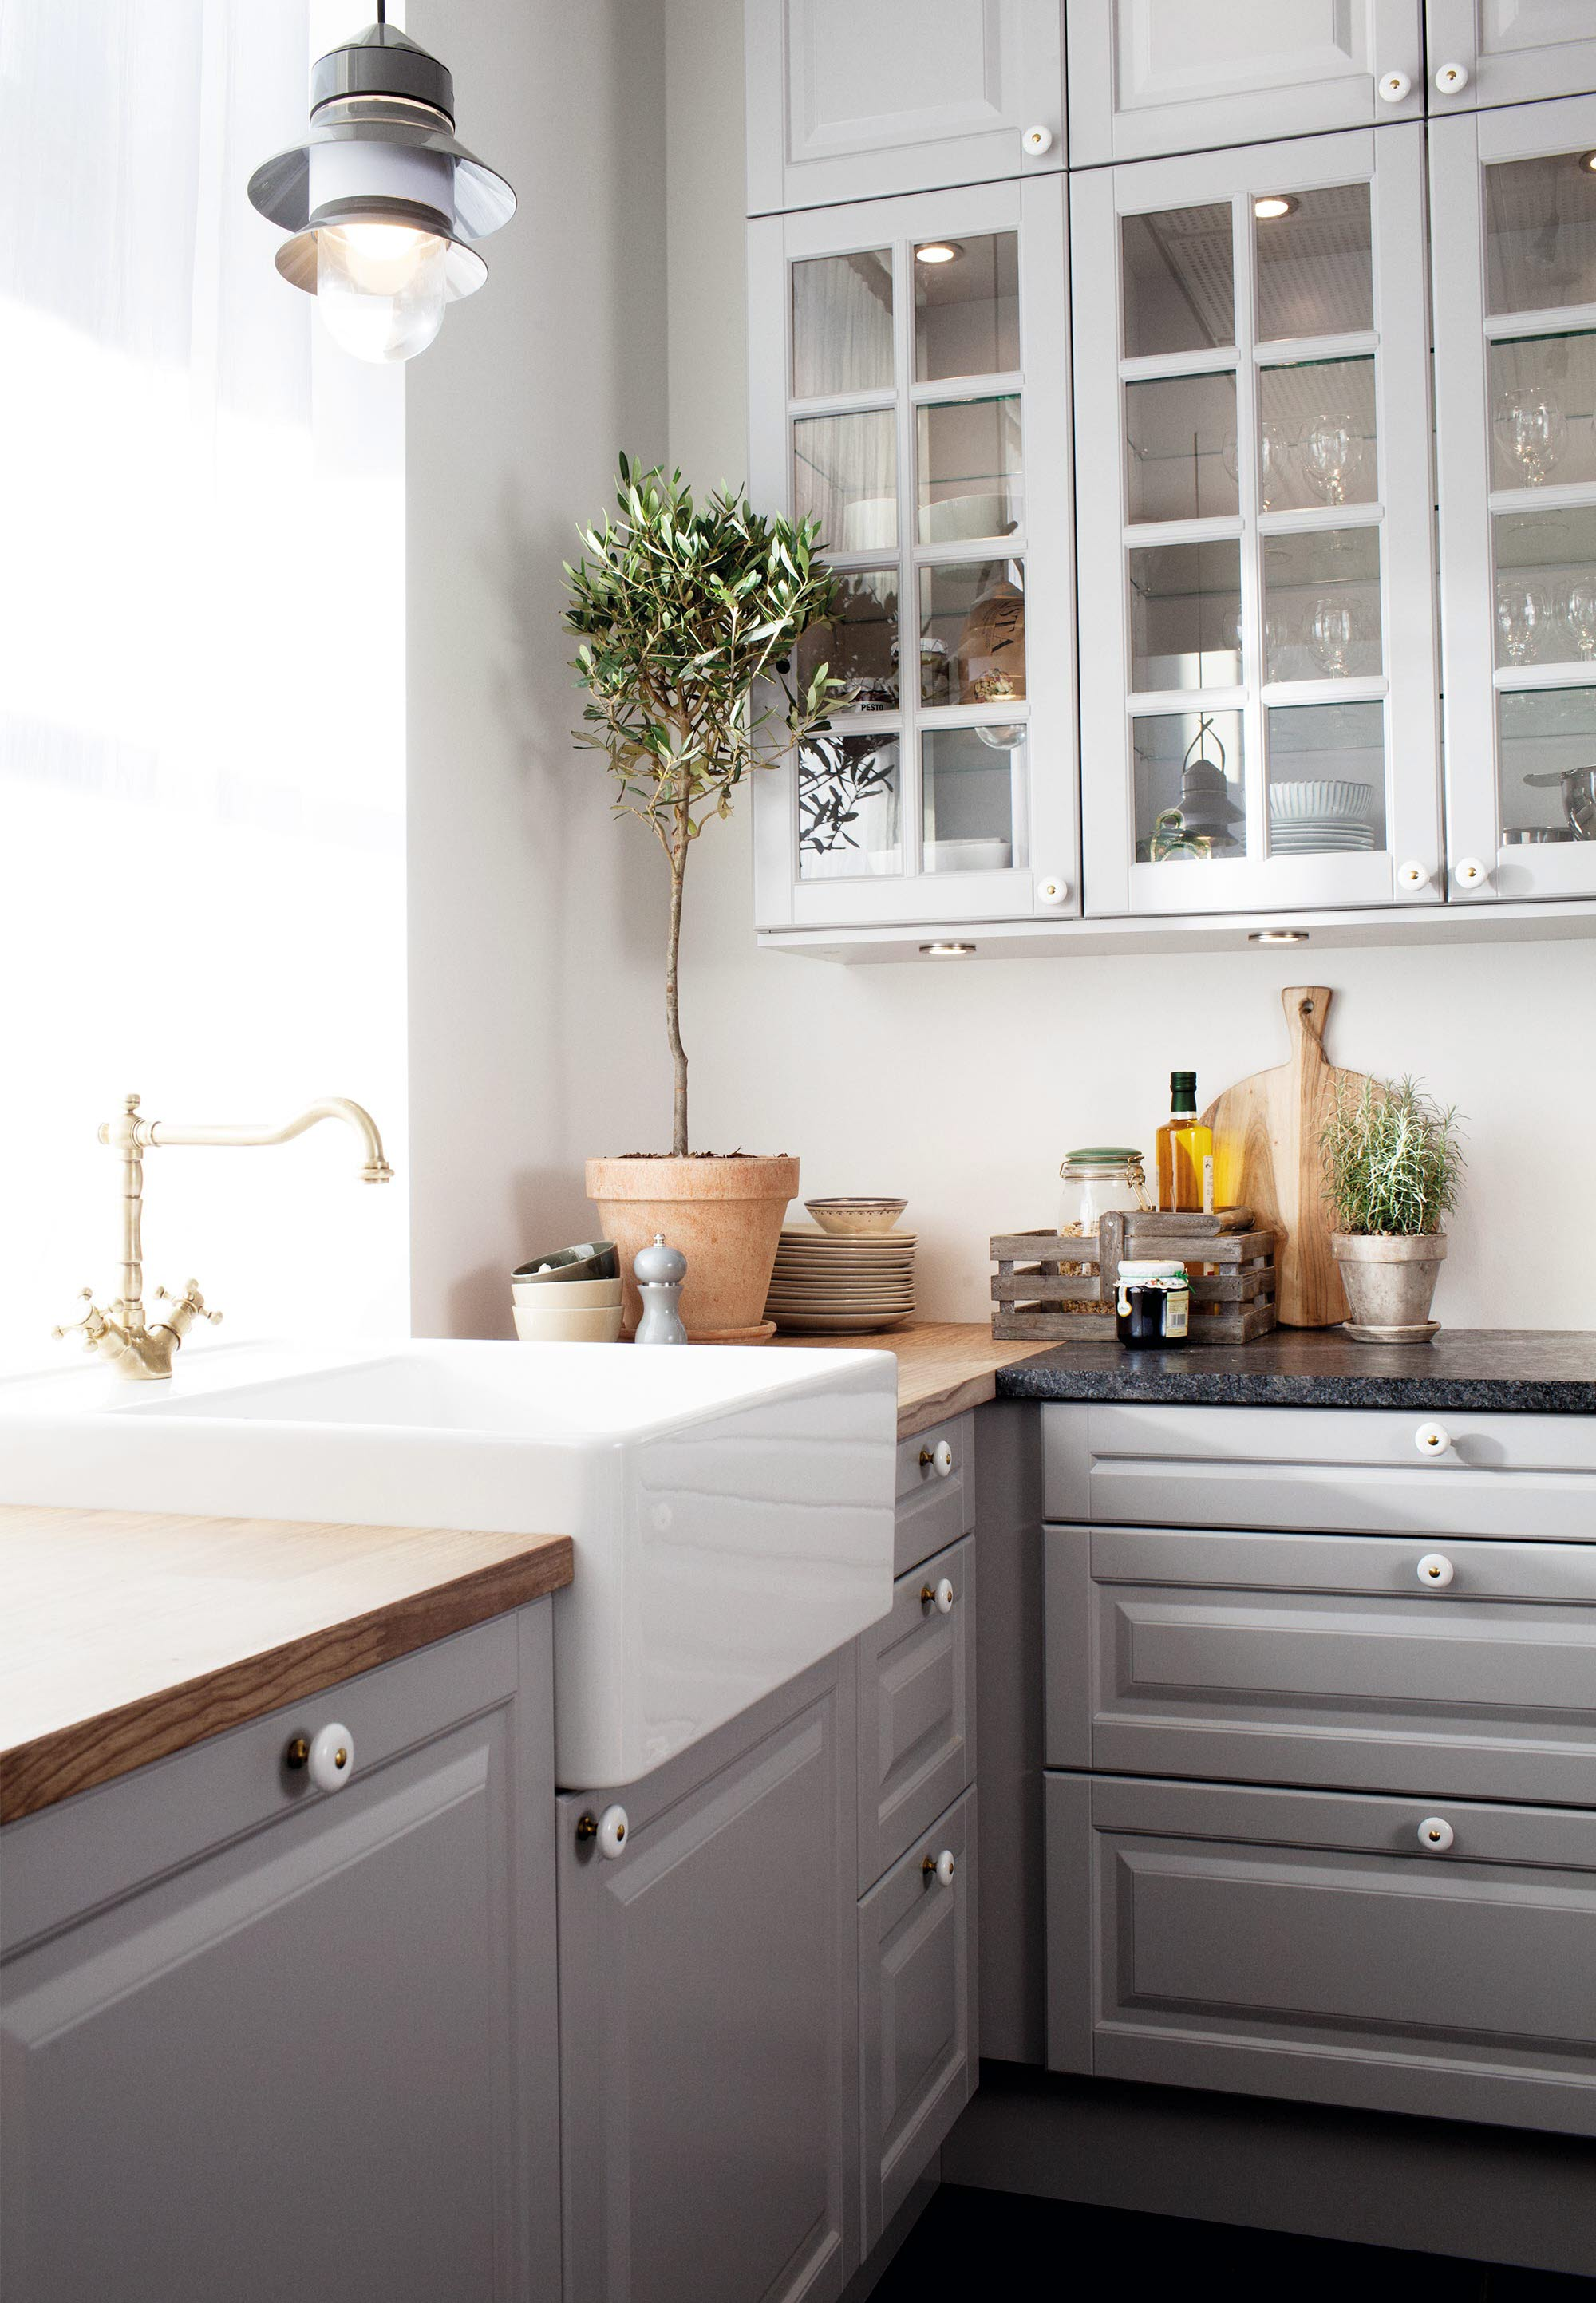 HTH Kitchen: Bathrooms, wardrobes and kitchens in Scandinavian ...